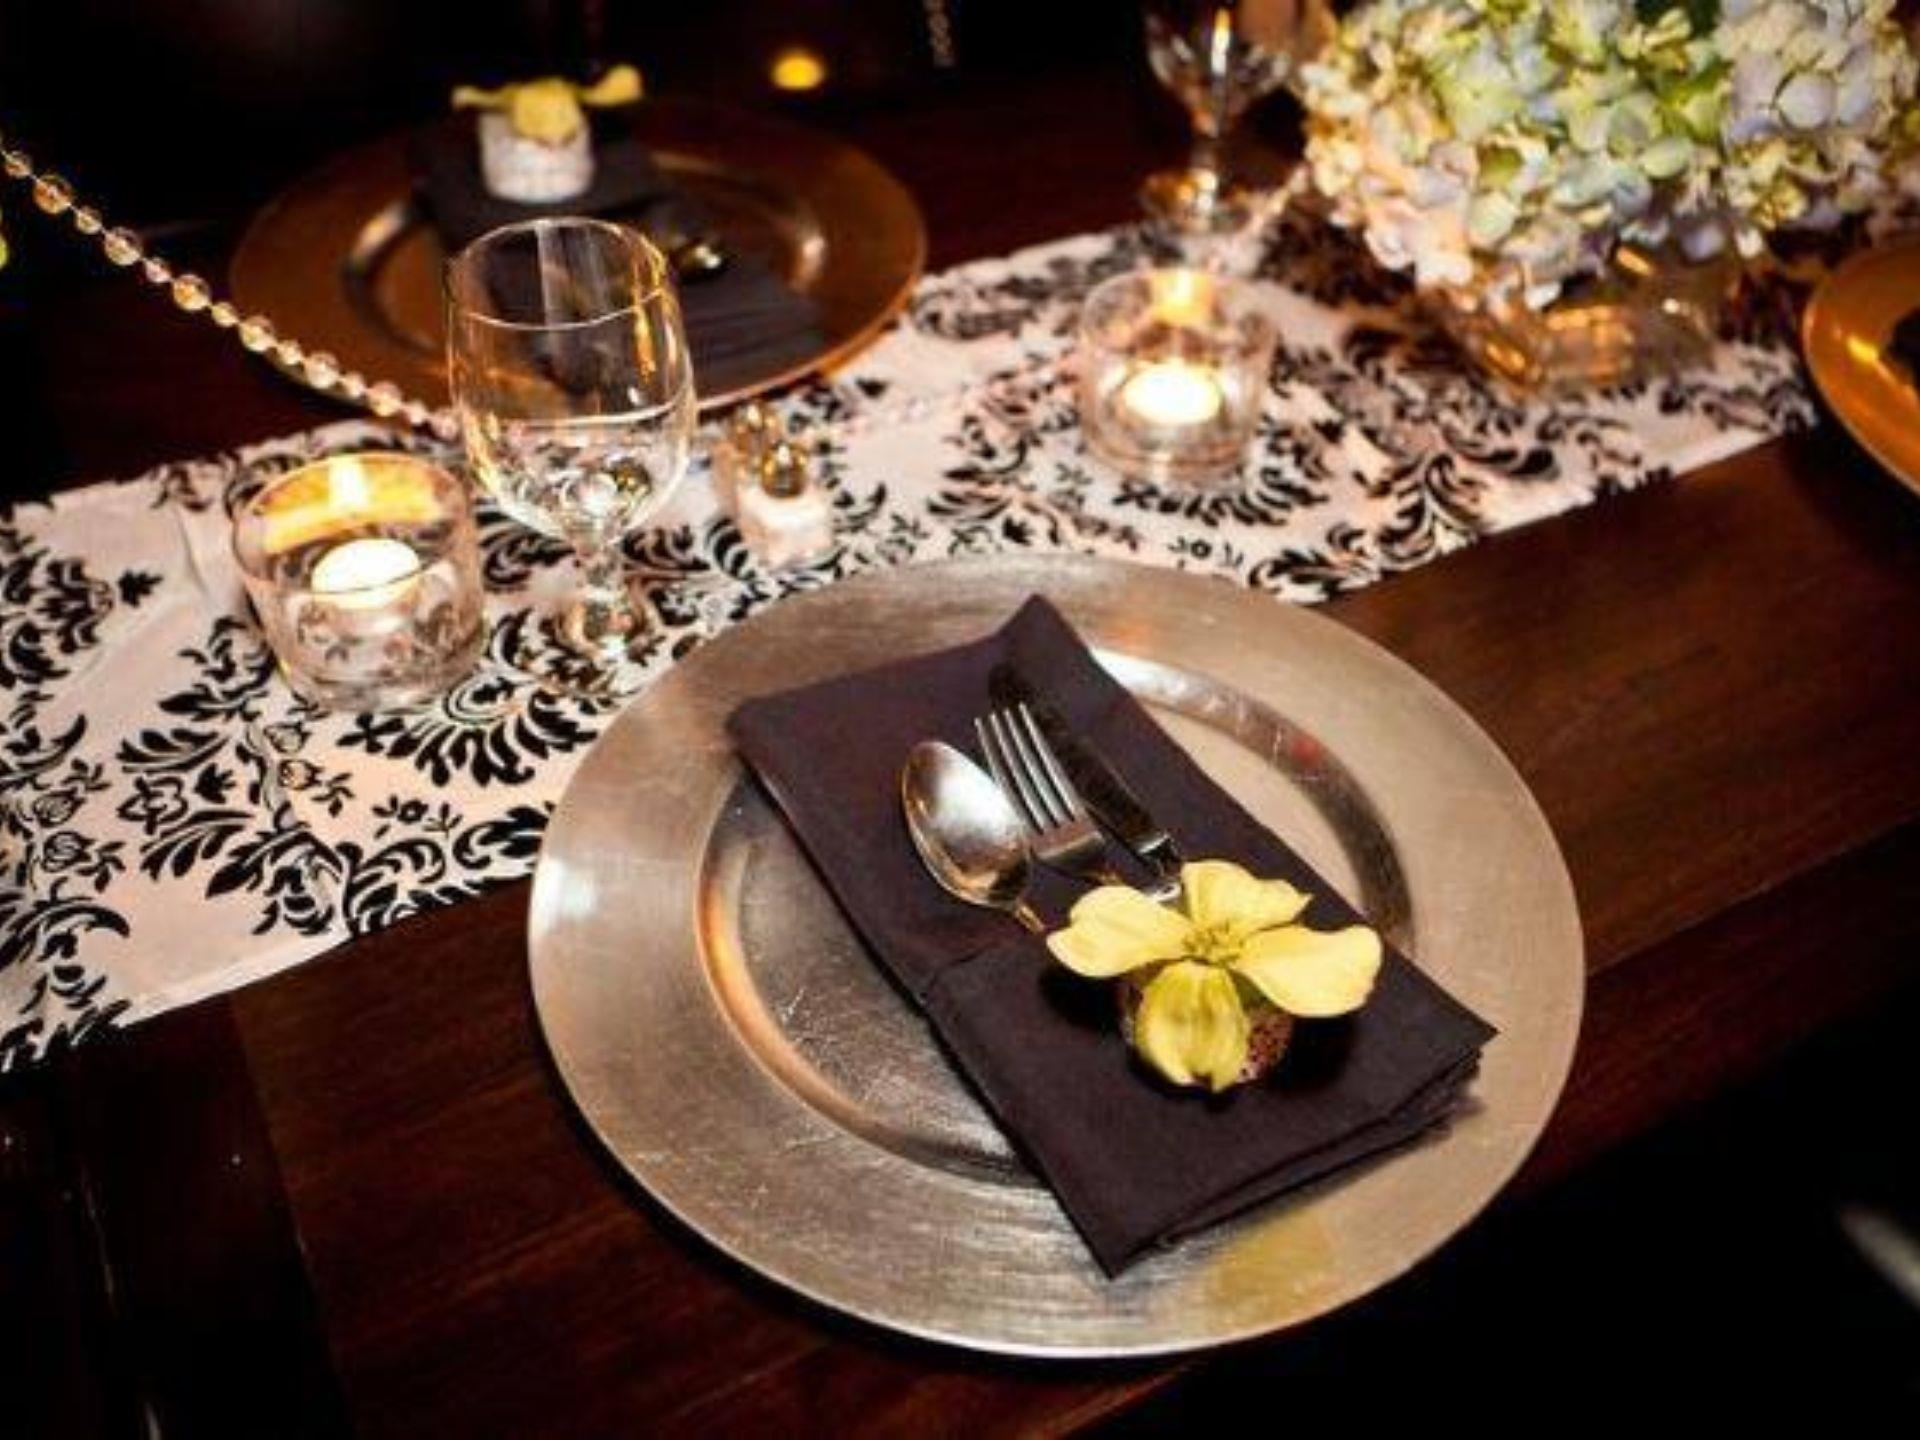 Placesetting with a fork and knife wrappe din a brown napkin with a wine glass, flowers and candles